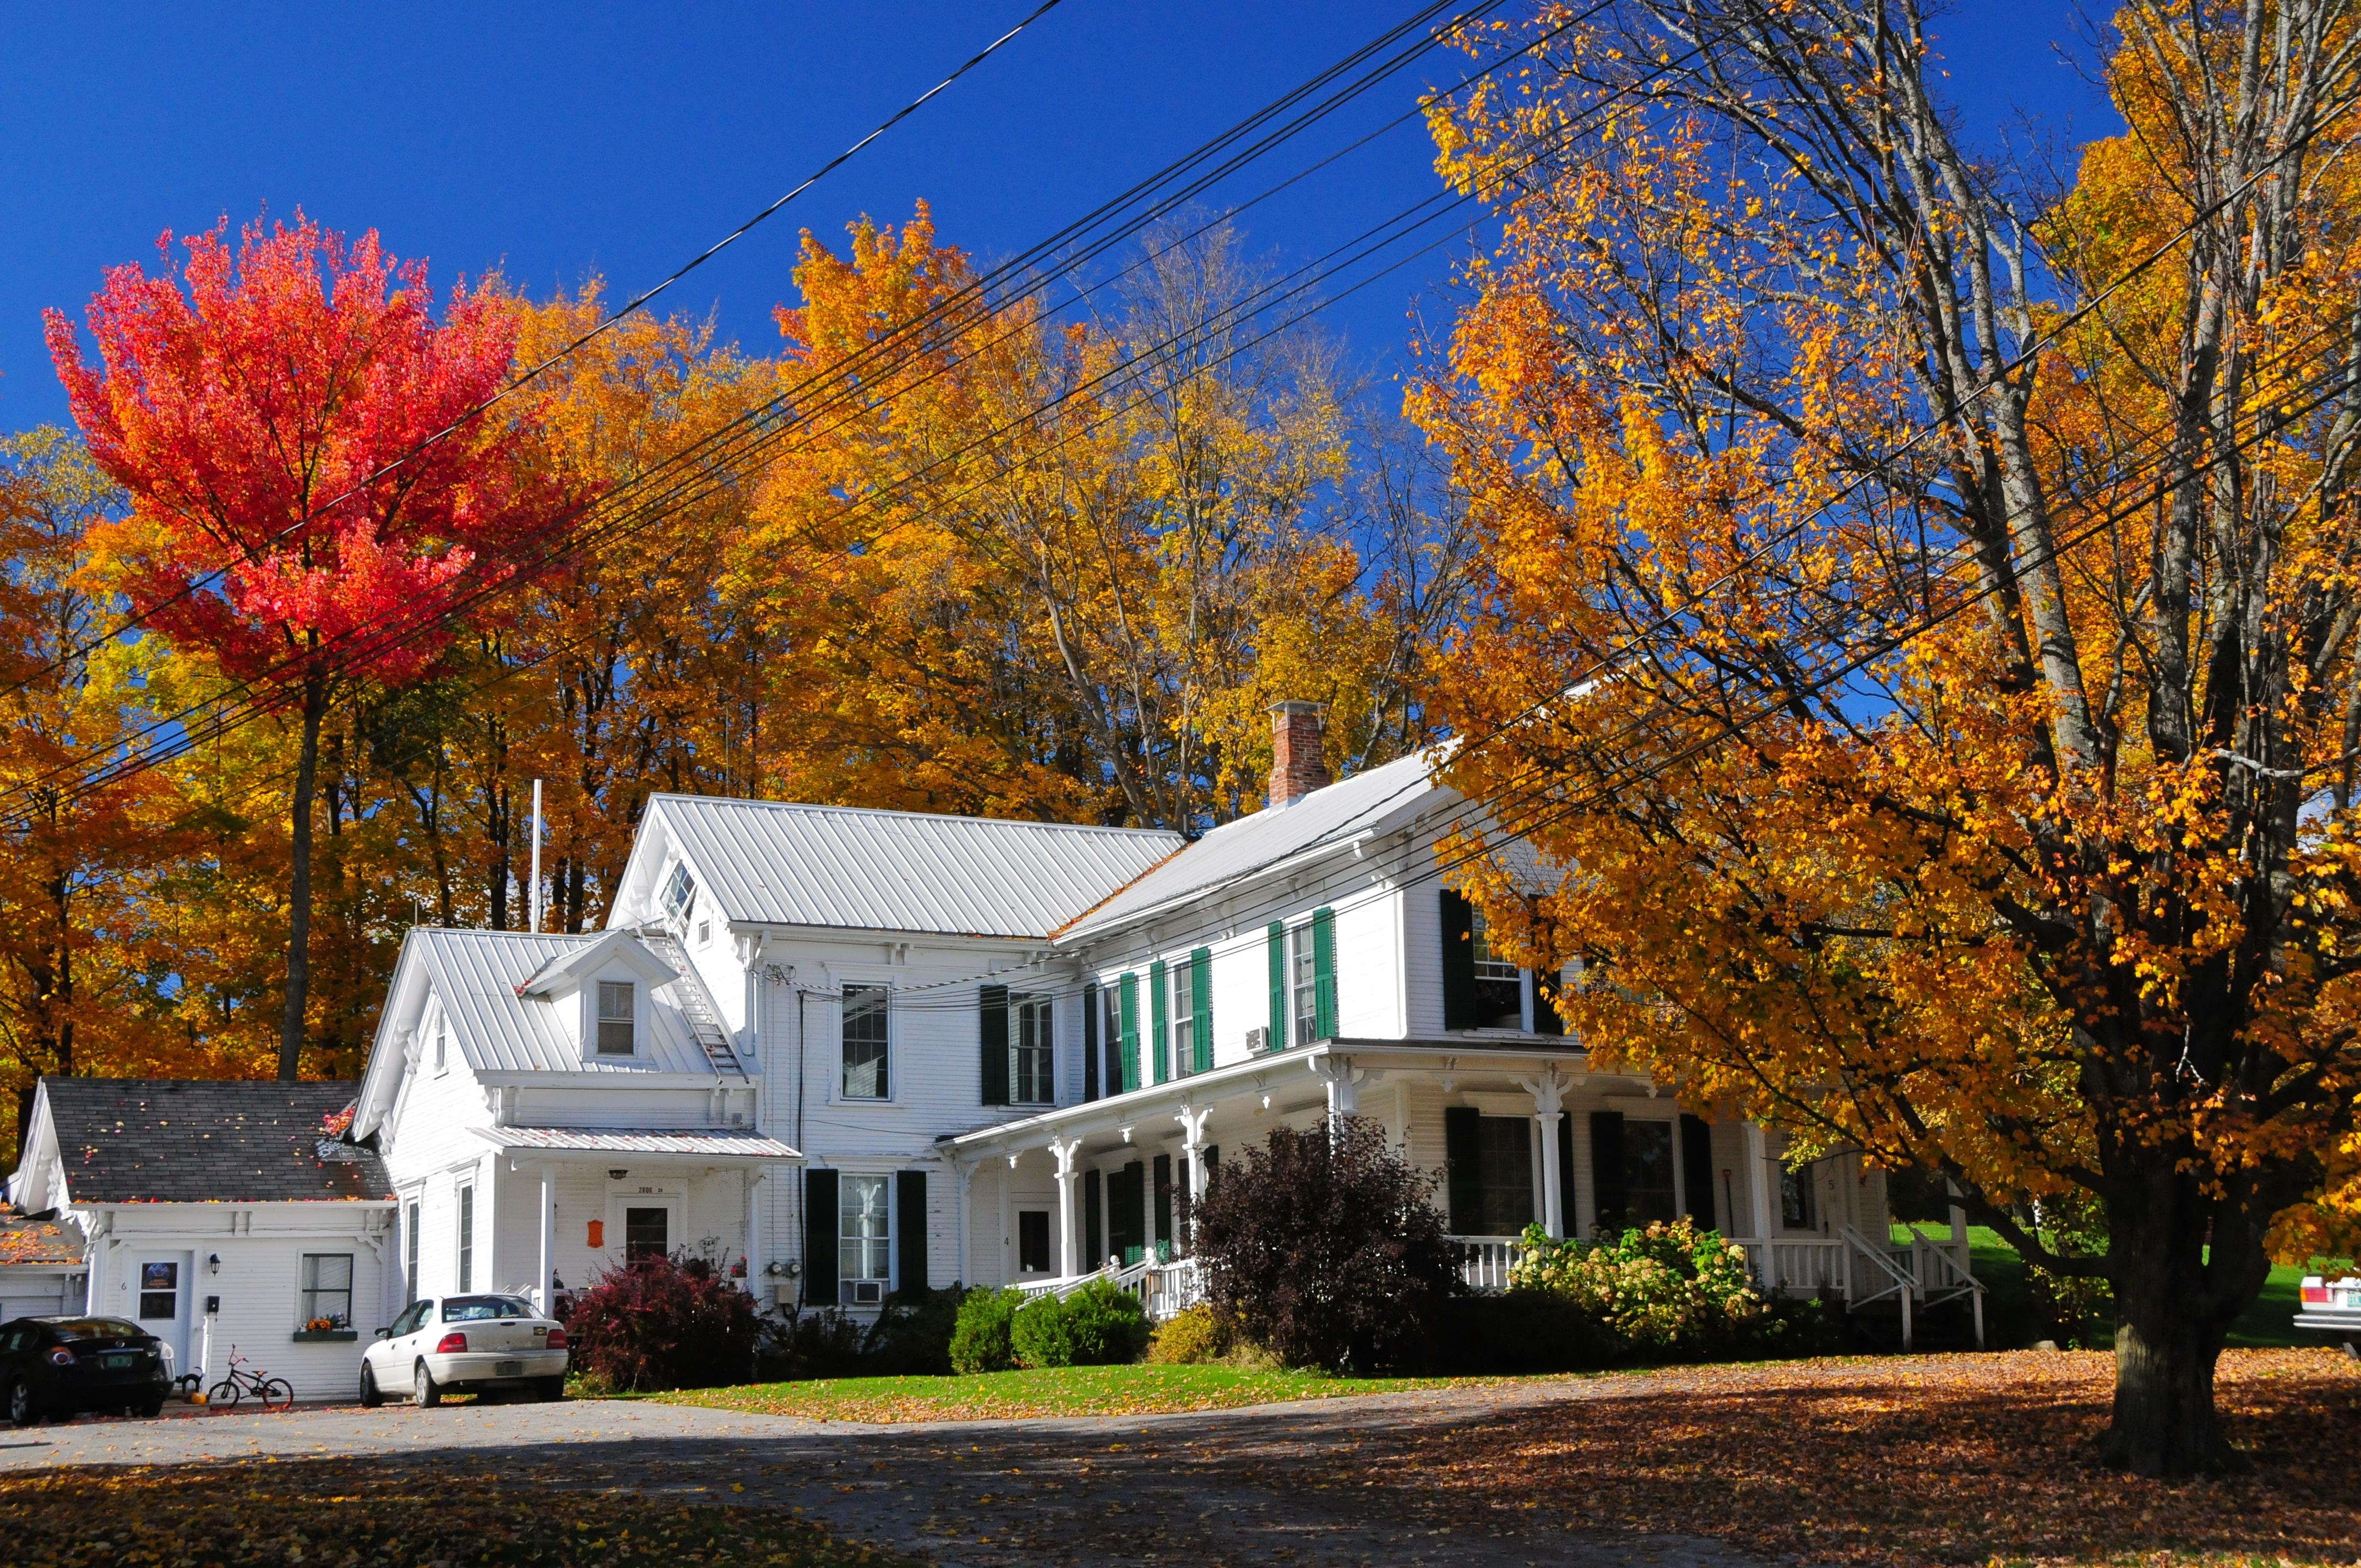 How to Sell a House By Owner in Vermont